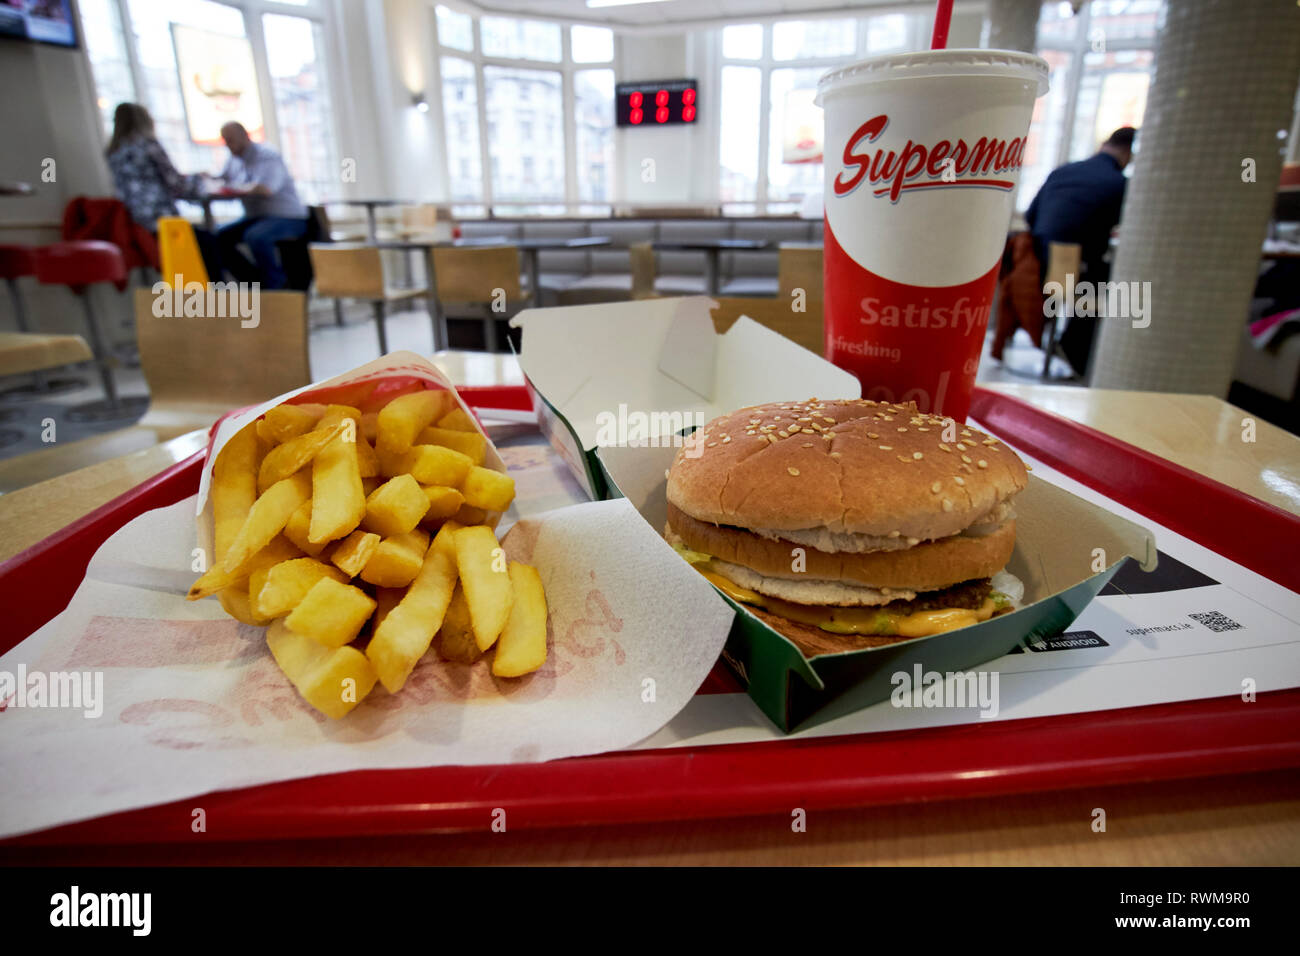 supermacs irish fast food burger chain mighty mac meal with fries and drink in their oconnell street store Dublin republic of Ireland - Stock Image